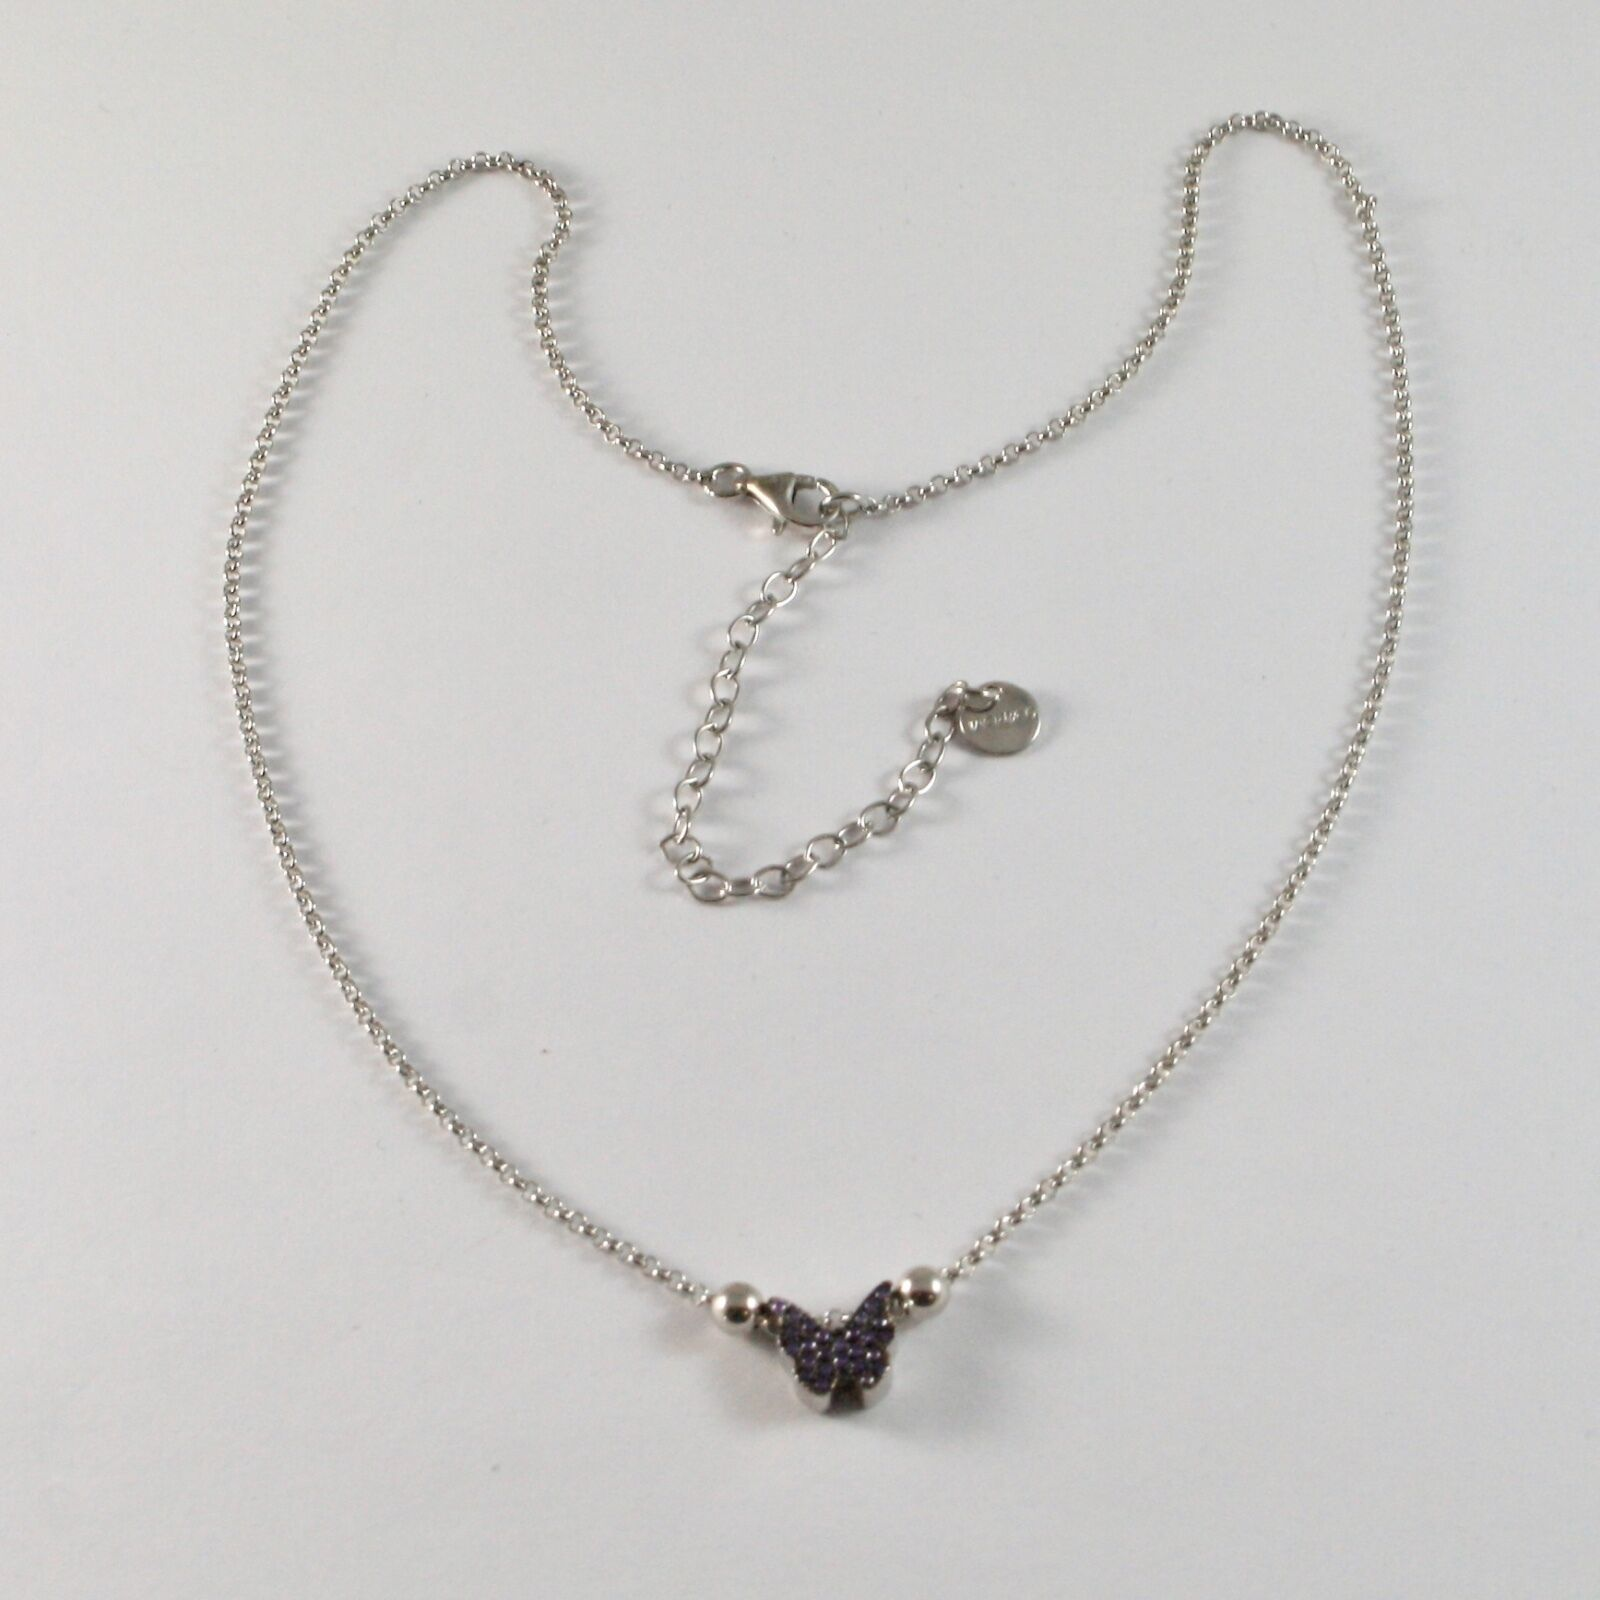 Silver Necklace 925 Jack&co with Butterfly with Zircon Cubic Purple JCN0607